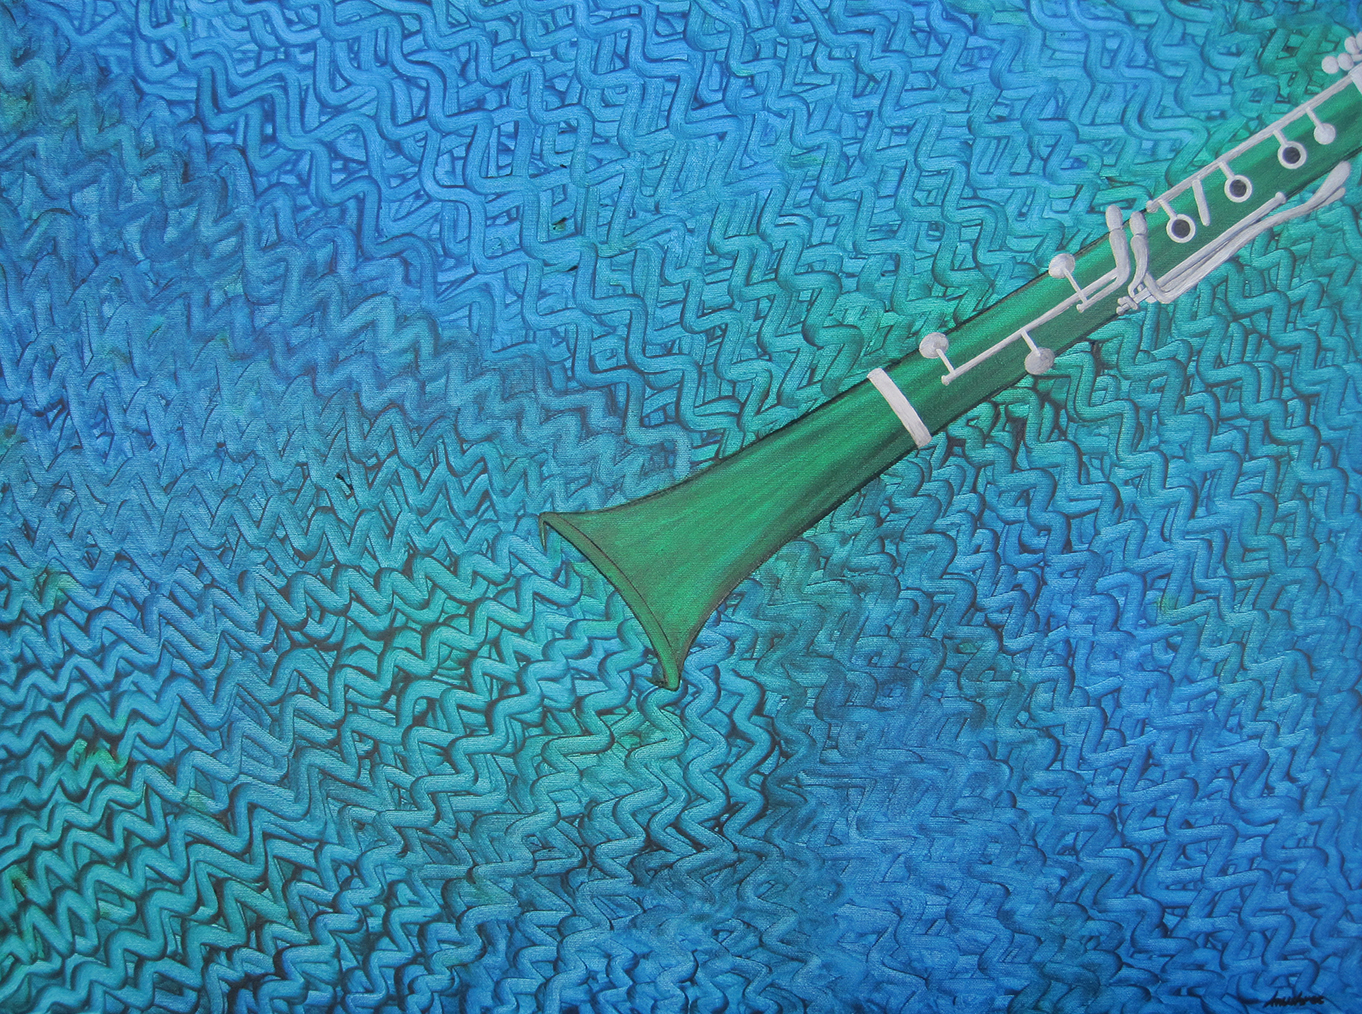 Clarinete de Mar artwork by Anushree Krementz - art listed for sale on Artplode